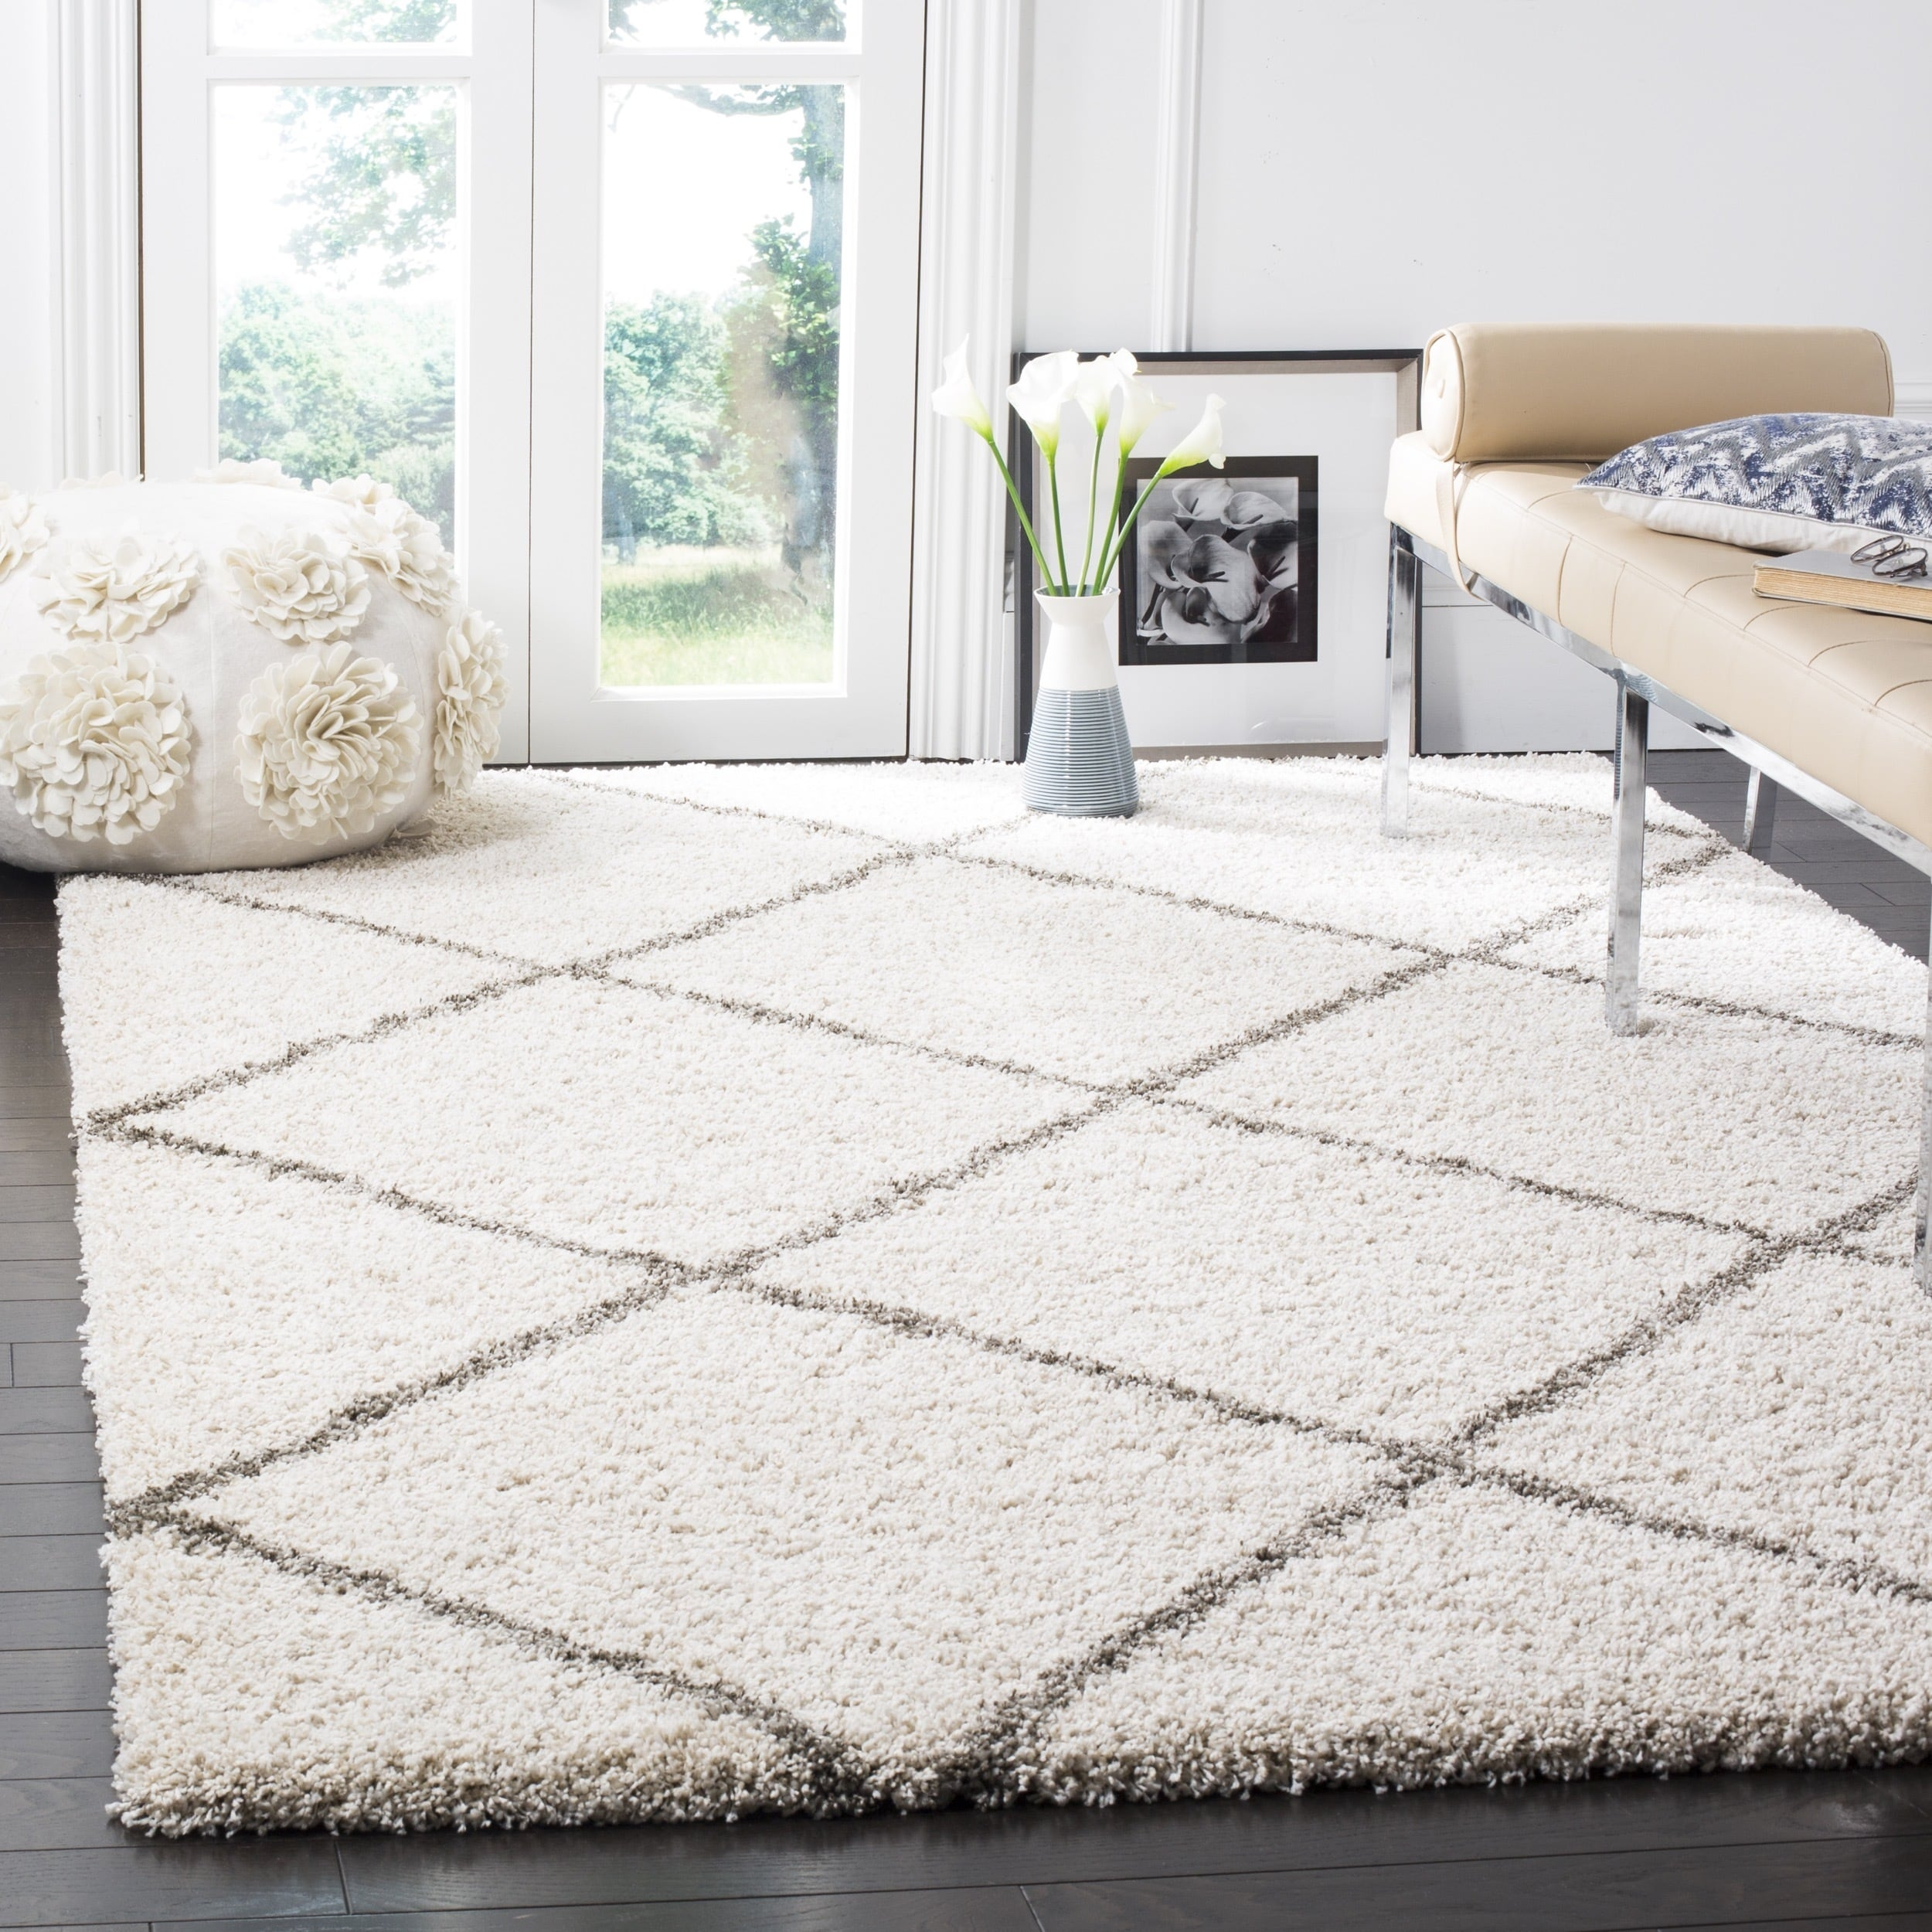 shag product today x shipping garden beige home safavieh smoke rug overstock area free florida